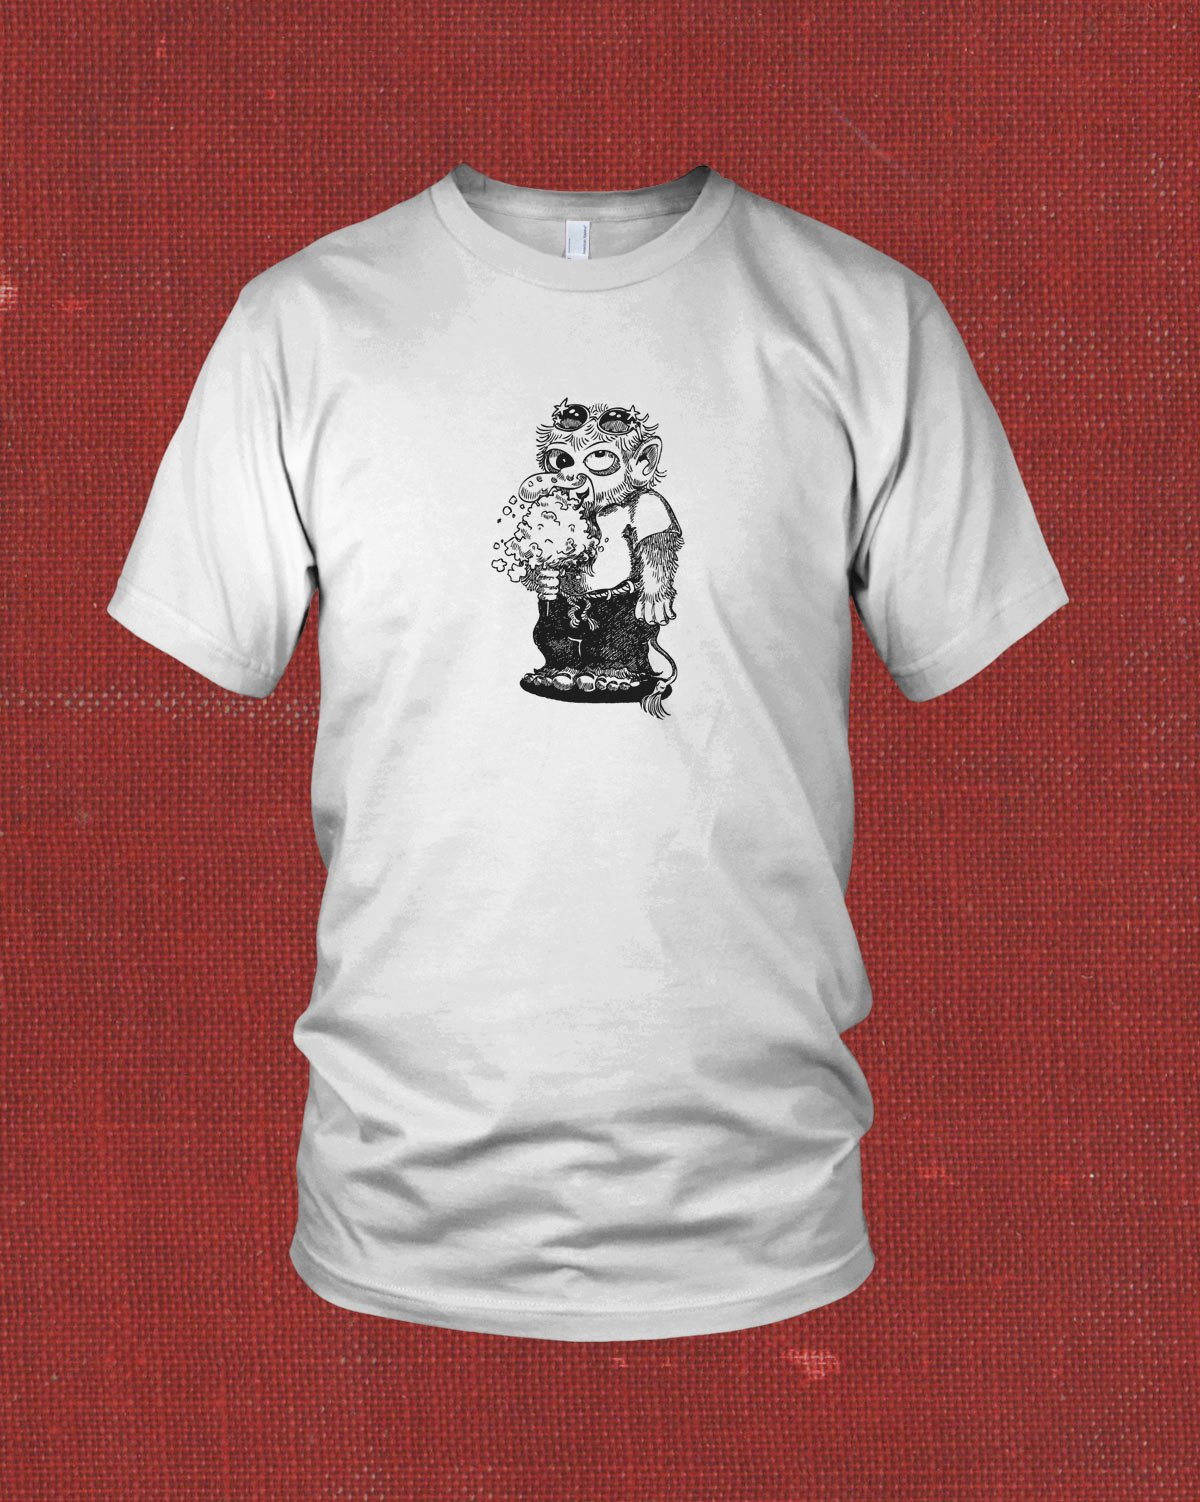 Evan author at evan webster ink page 5 of 38 for Custom t shirts front and back